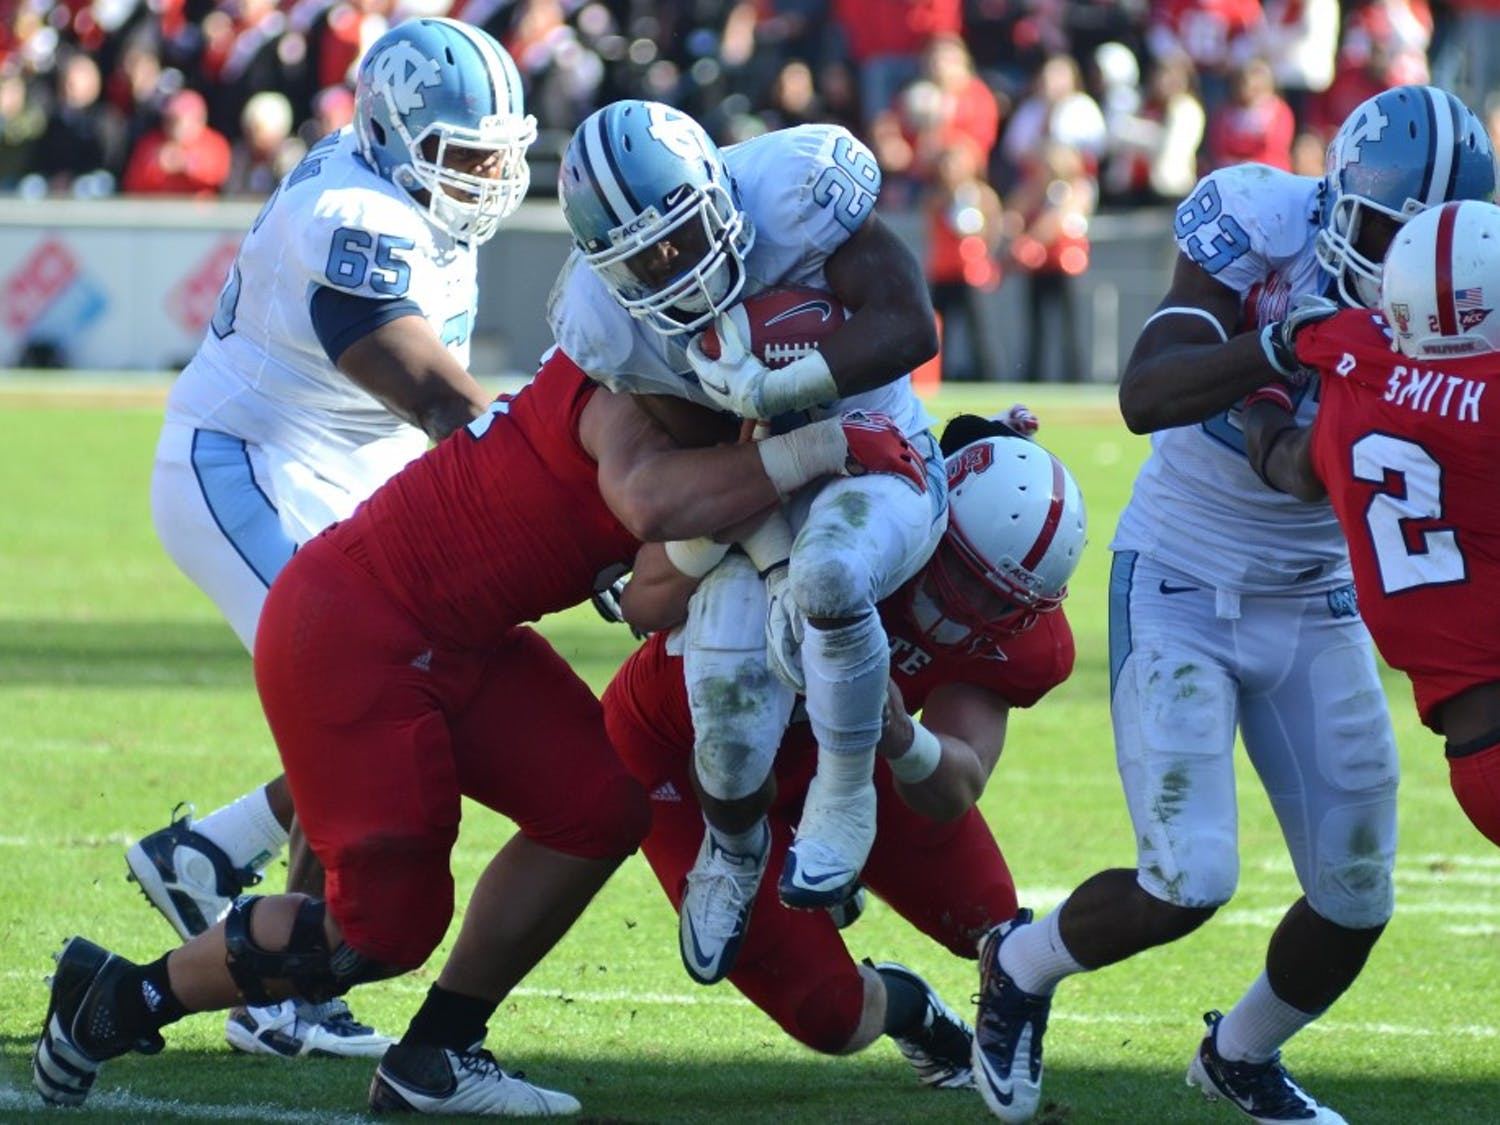 UNC running back Giovani Bernard fights for extra yards against the Wolfpack defense in UNC's 13-0 loss to NC State at Carter-Finley Stadium in Raleigh, NC.